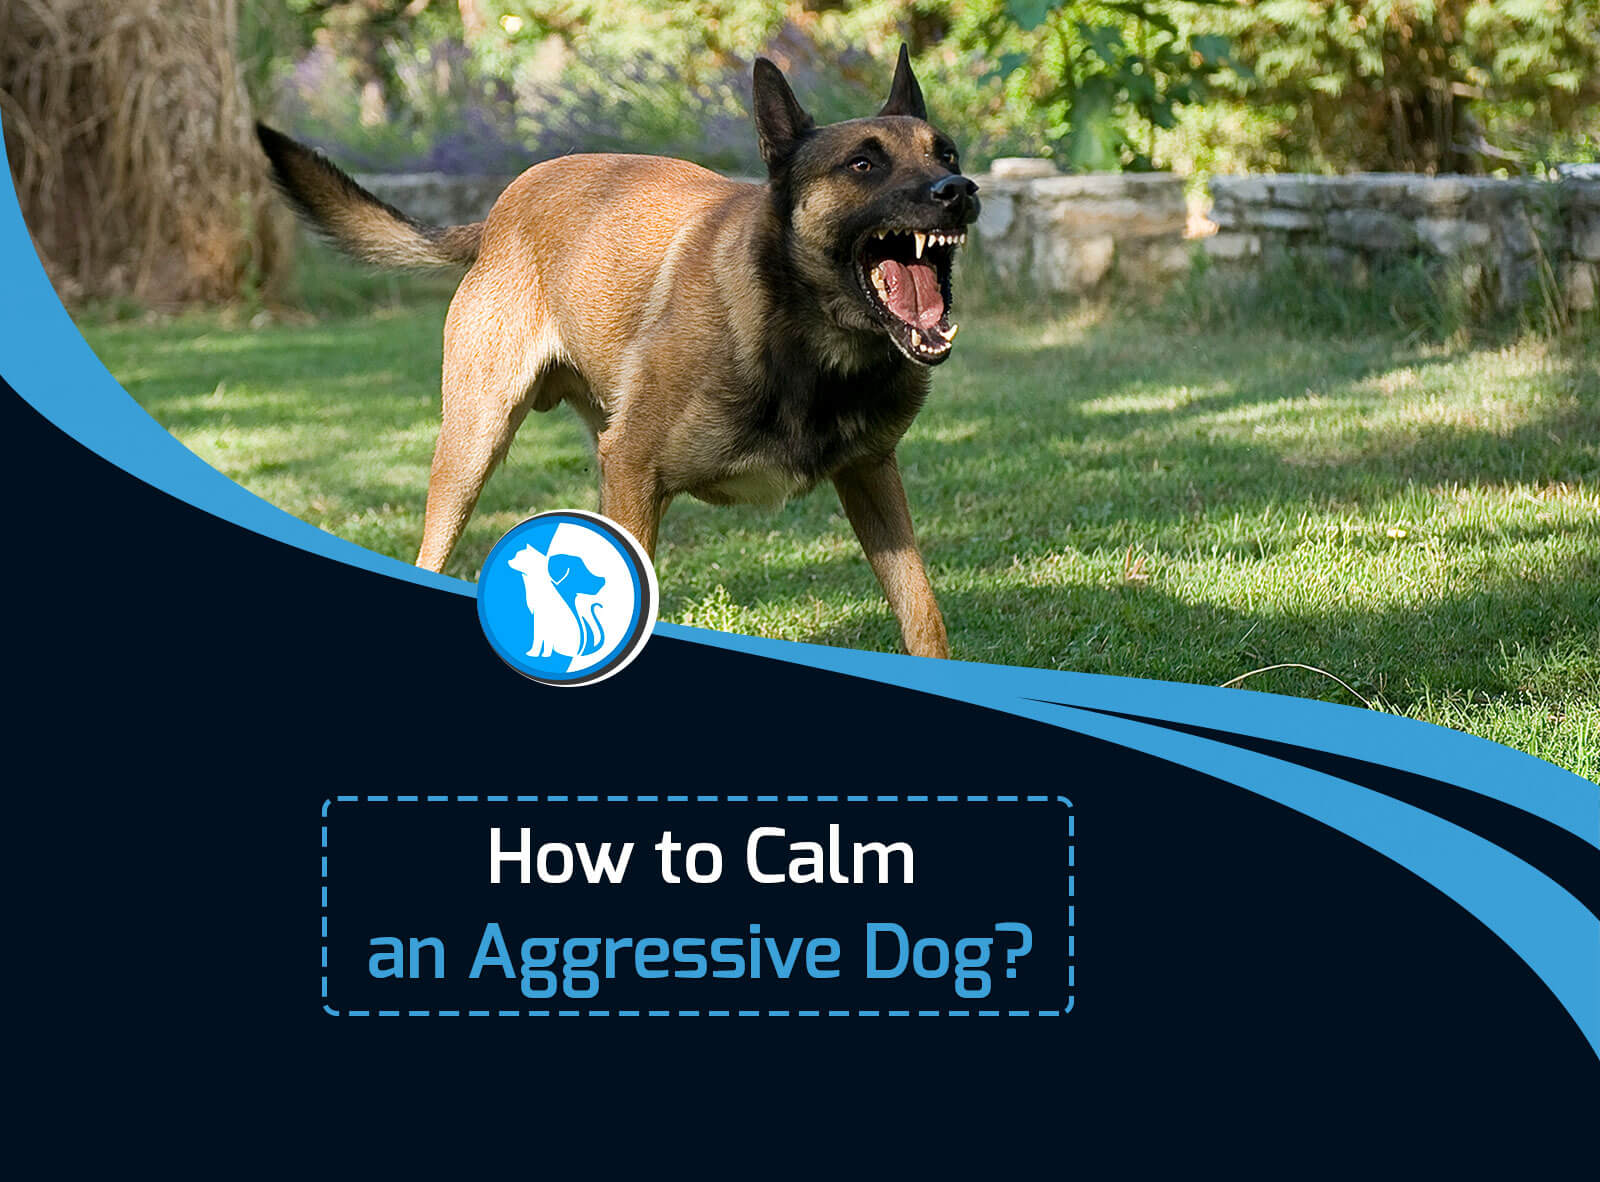 How to Calm an Aggressive Dog?